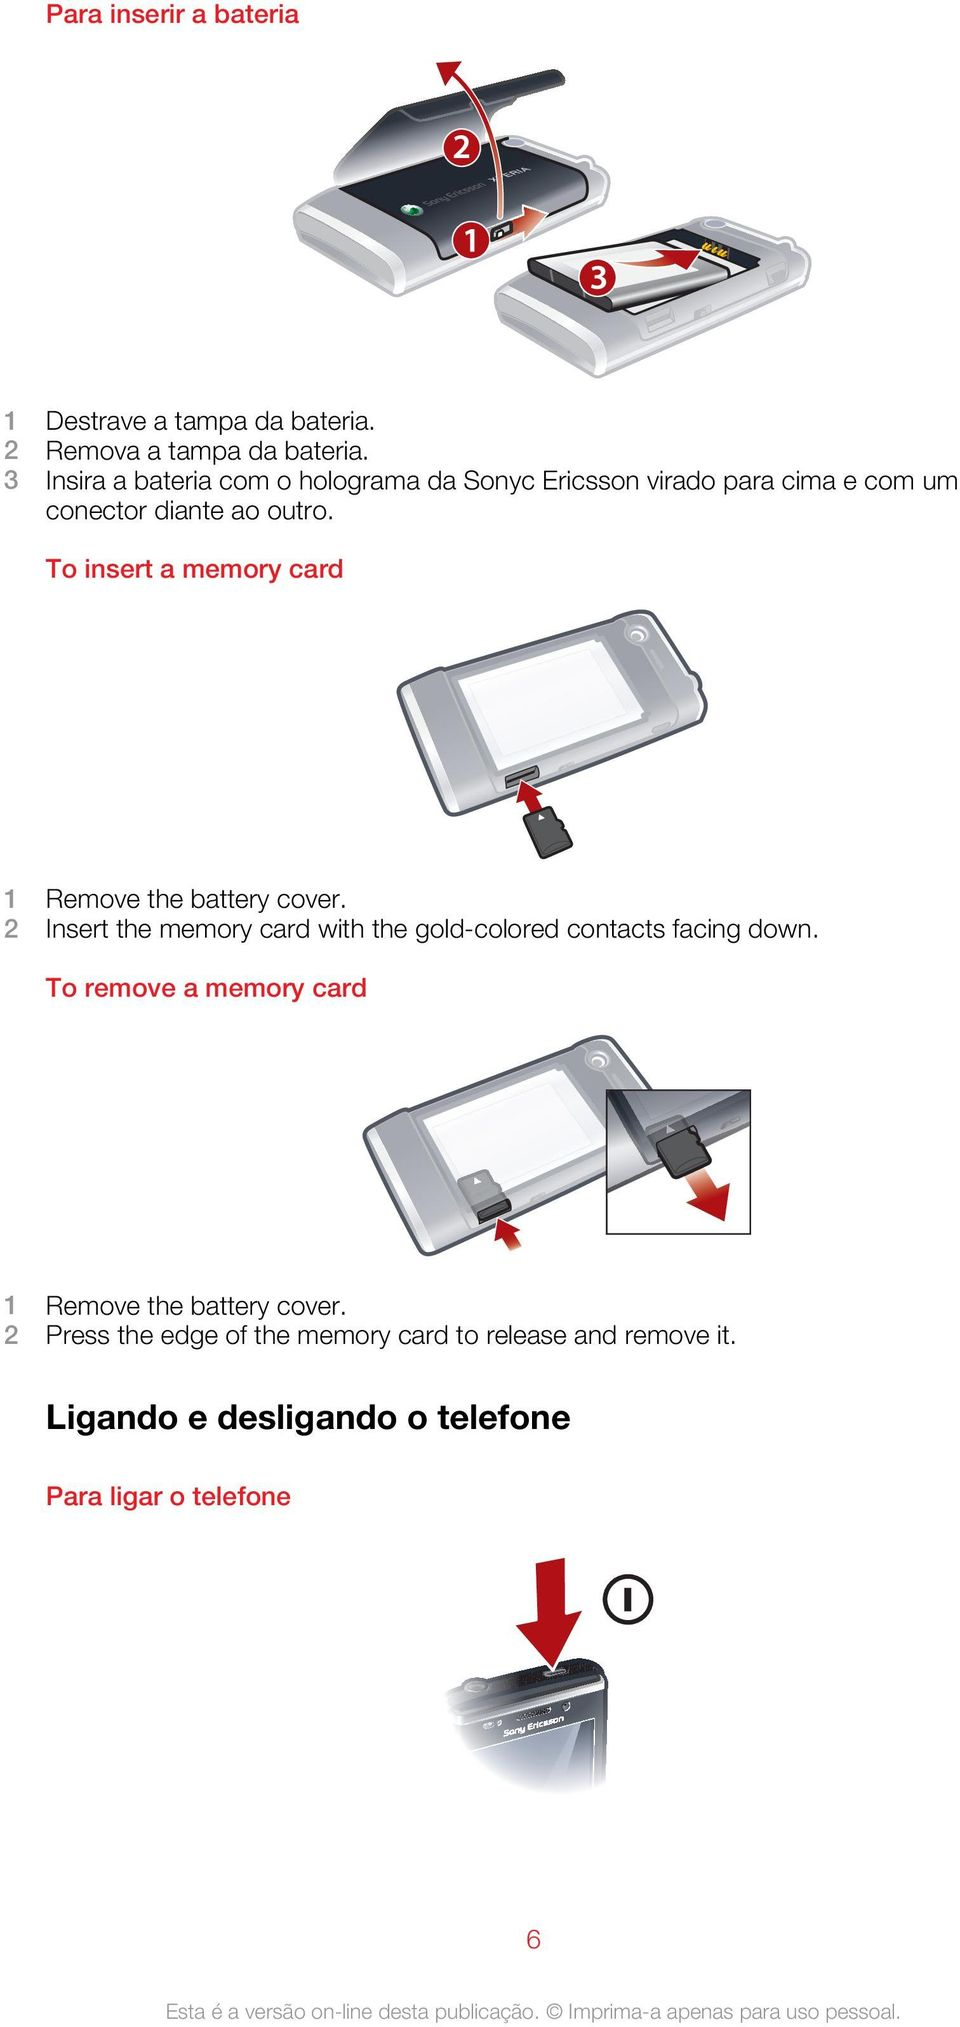 To insert a memory card 1 Remove the battery cover. 2 Insert the memory card with the gold-colored contacts facing down.